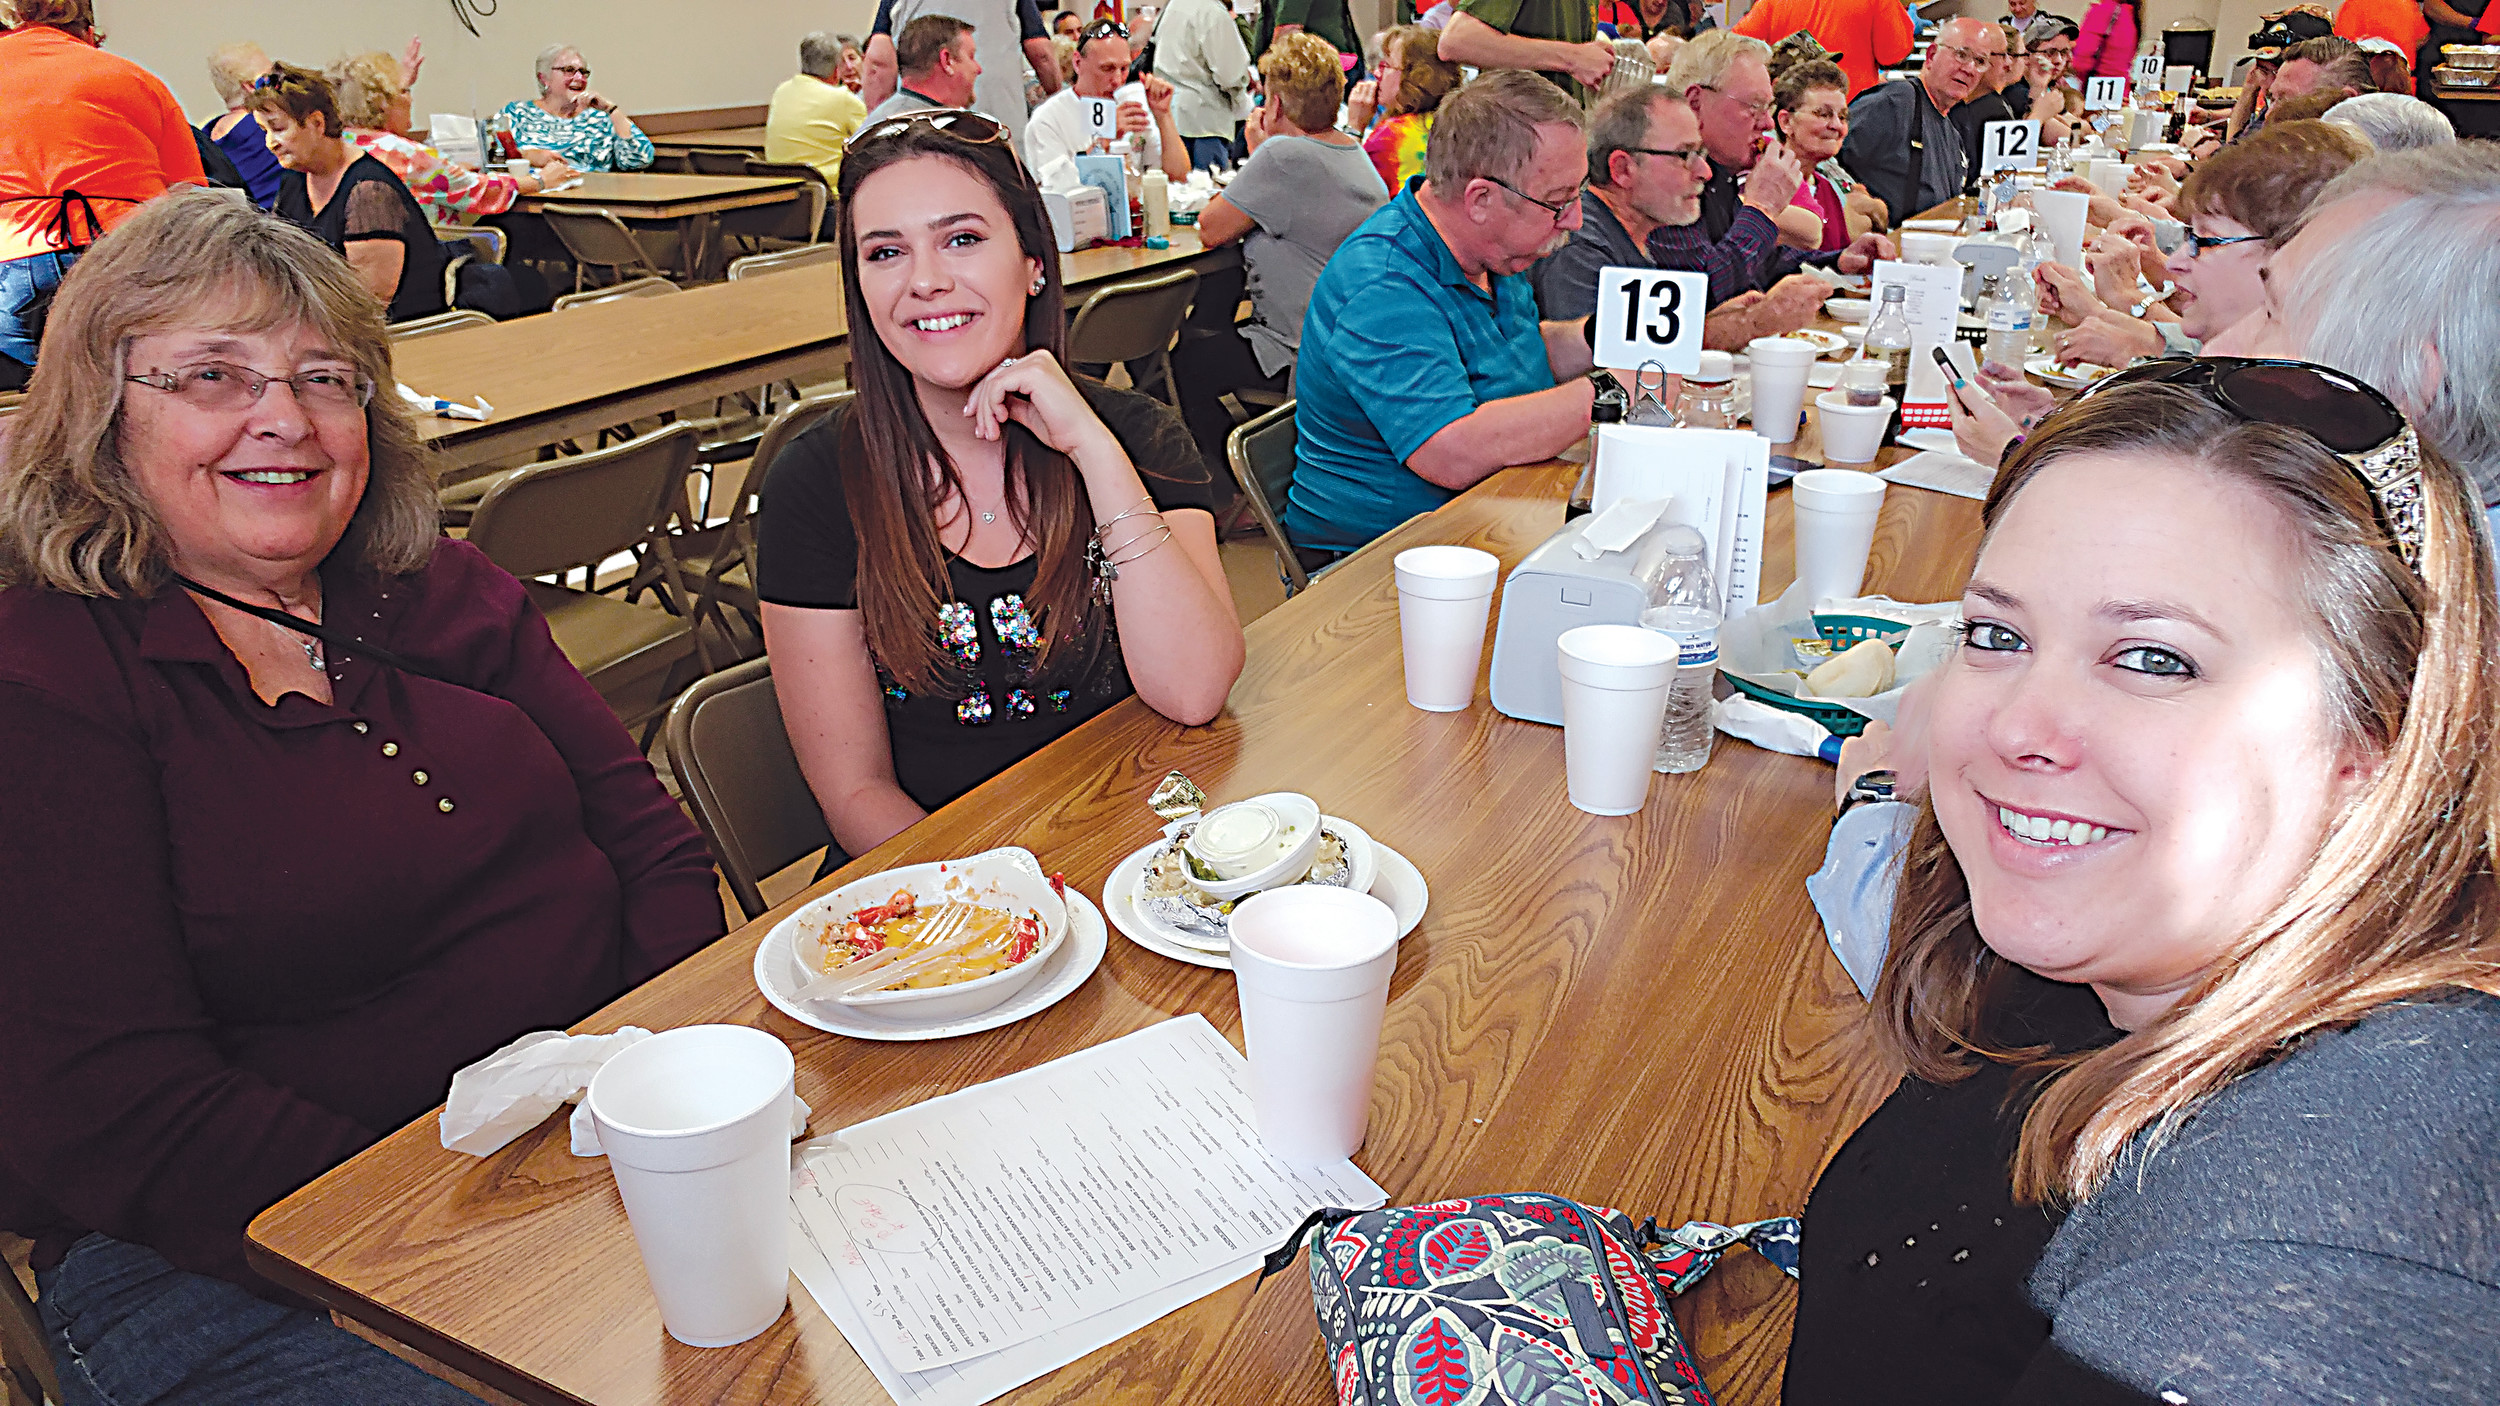 The Hrobak family, consisting of from left to right, Carol, Kirsten and Courtney, partook in the Londonderry fish fry.